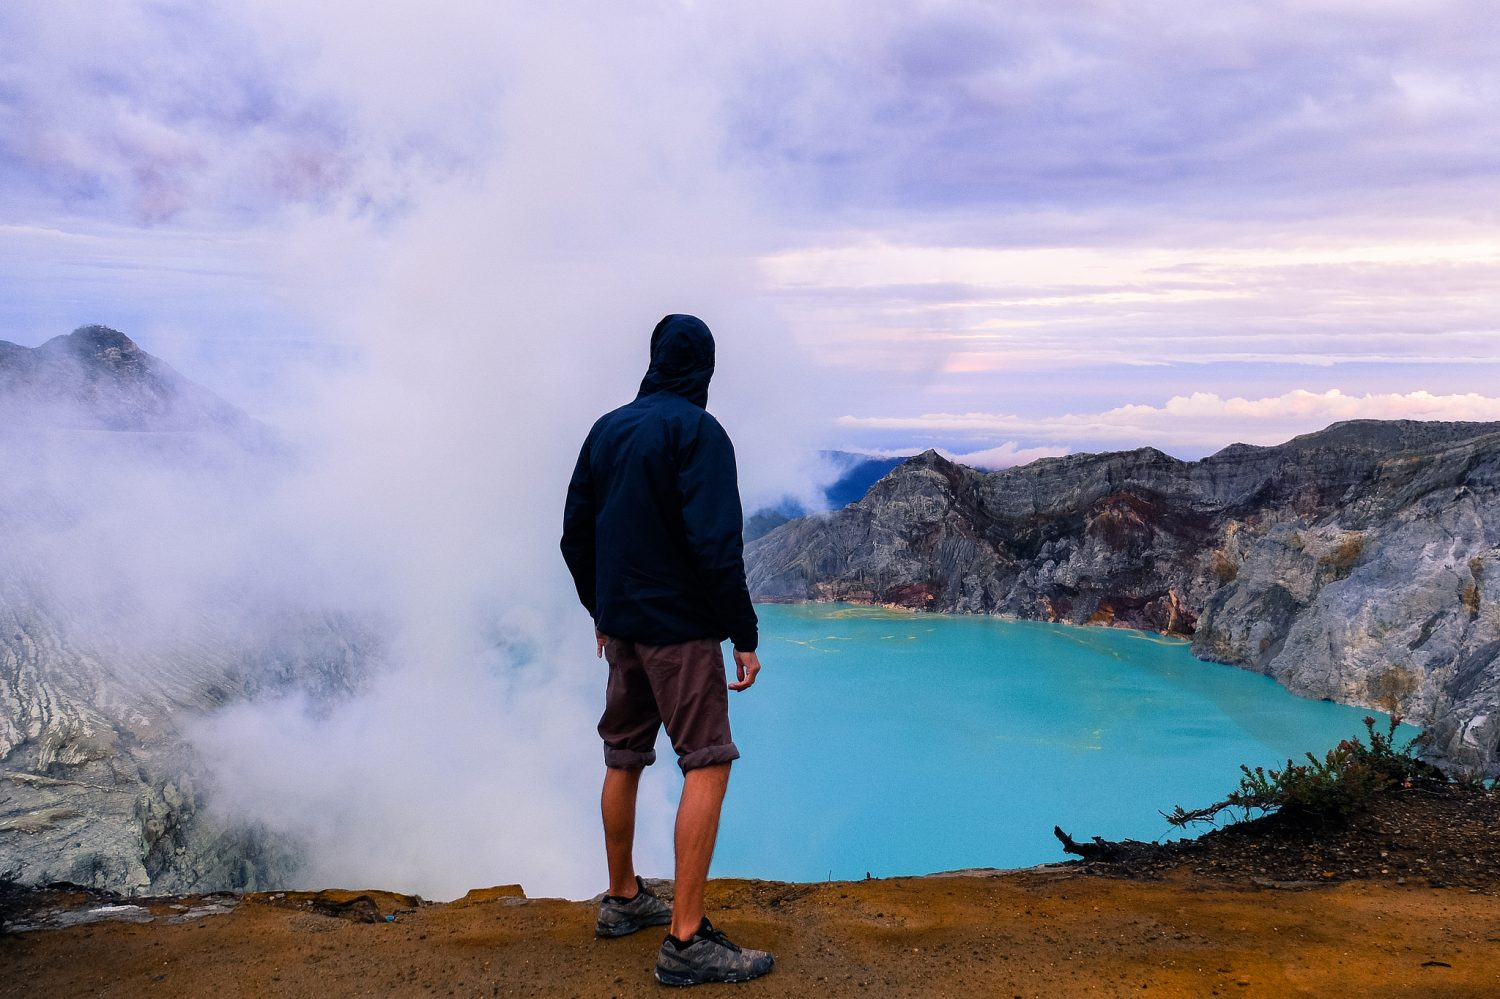 Sunrise at Ijen crater lake - Indonesian visa on arrival